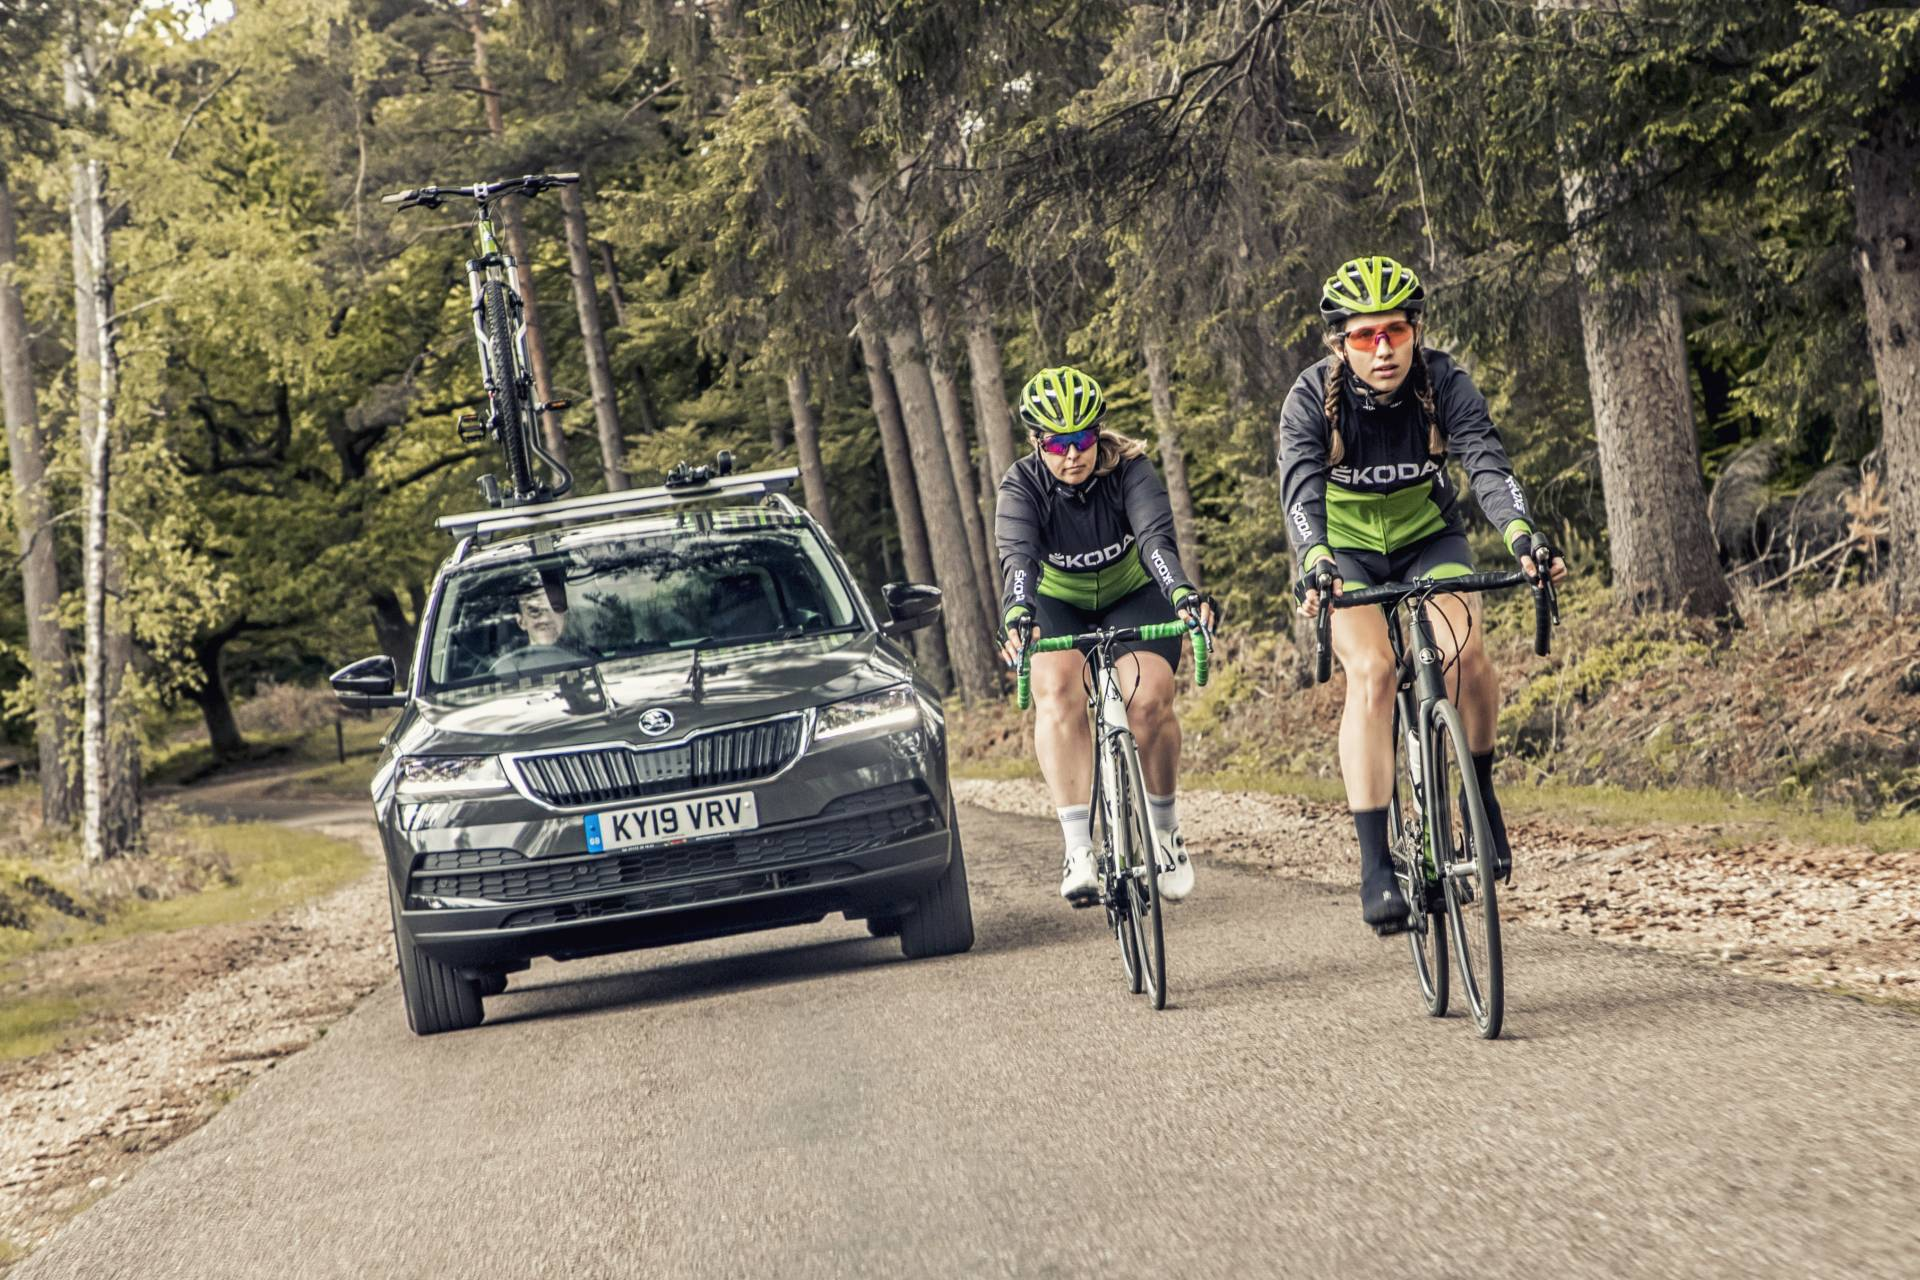 The British subsidiary of Skoda has come out with the Karoq Velo, a version of its popular compact SUV adapted to the needs of cyclists